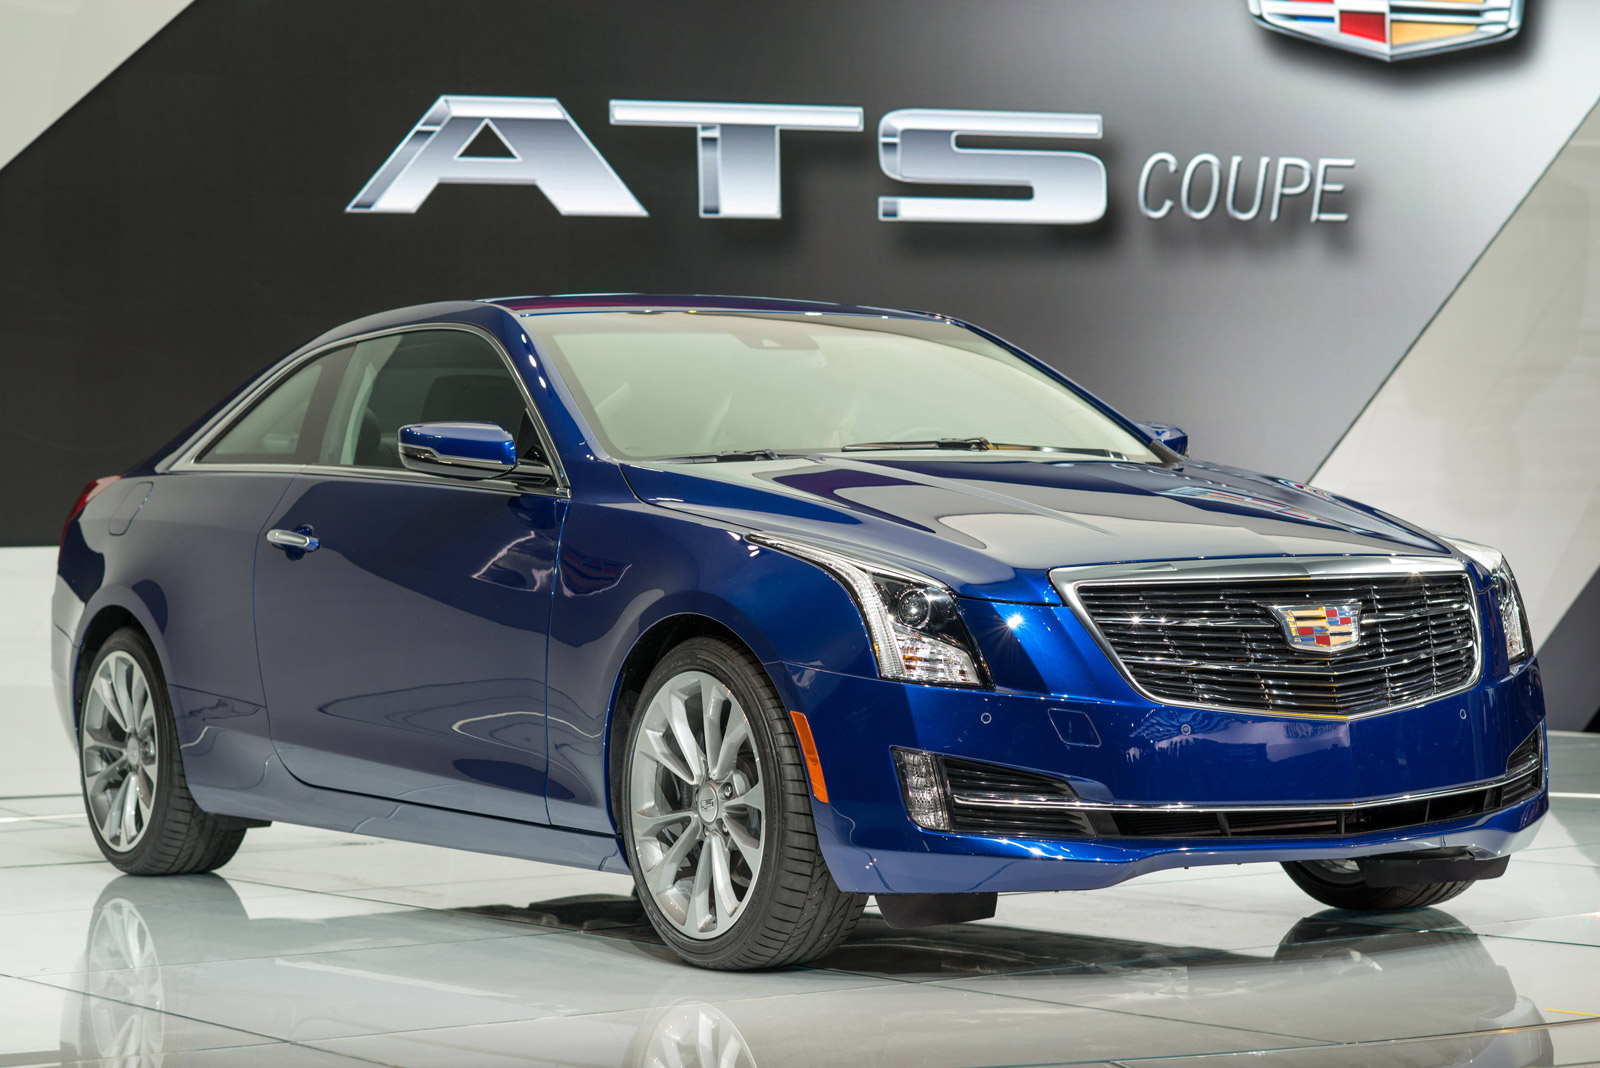 spin ats performance coupe cadillac jy quick attachment ca autos test car drives